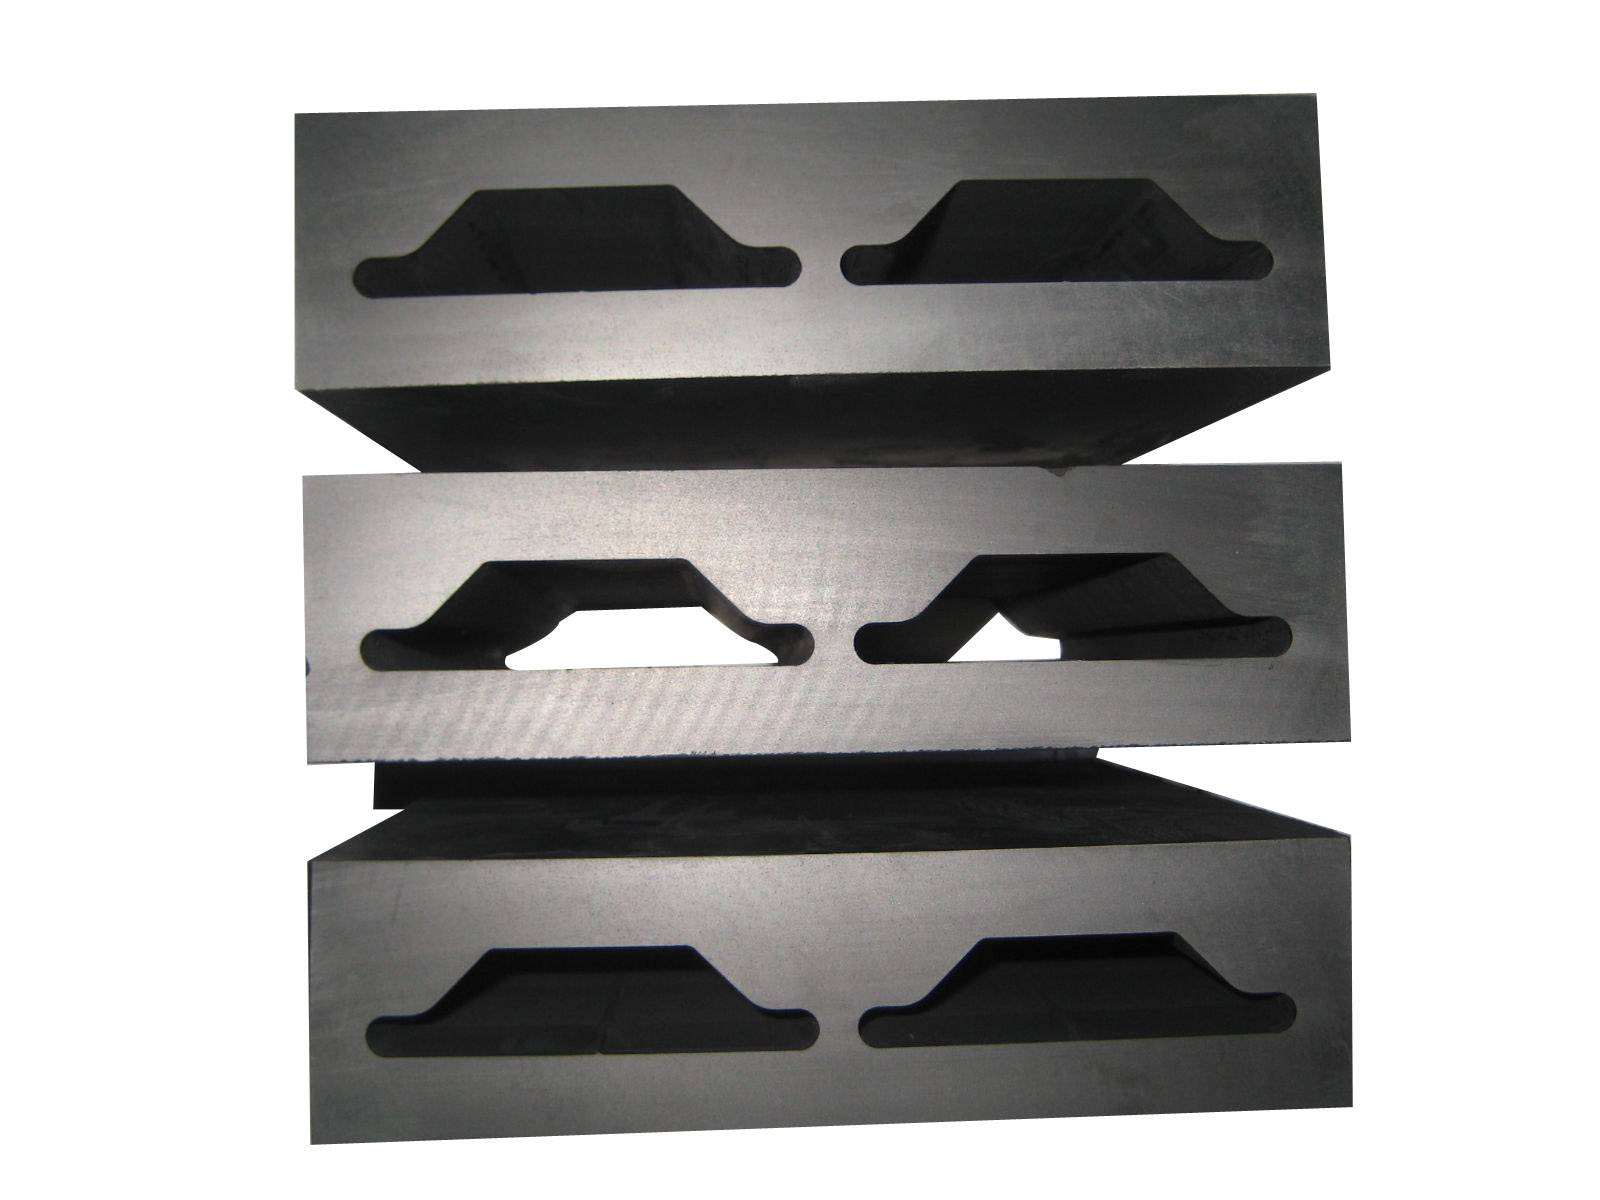 Graphite Mold for Die casting